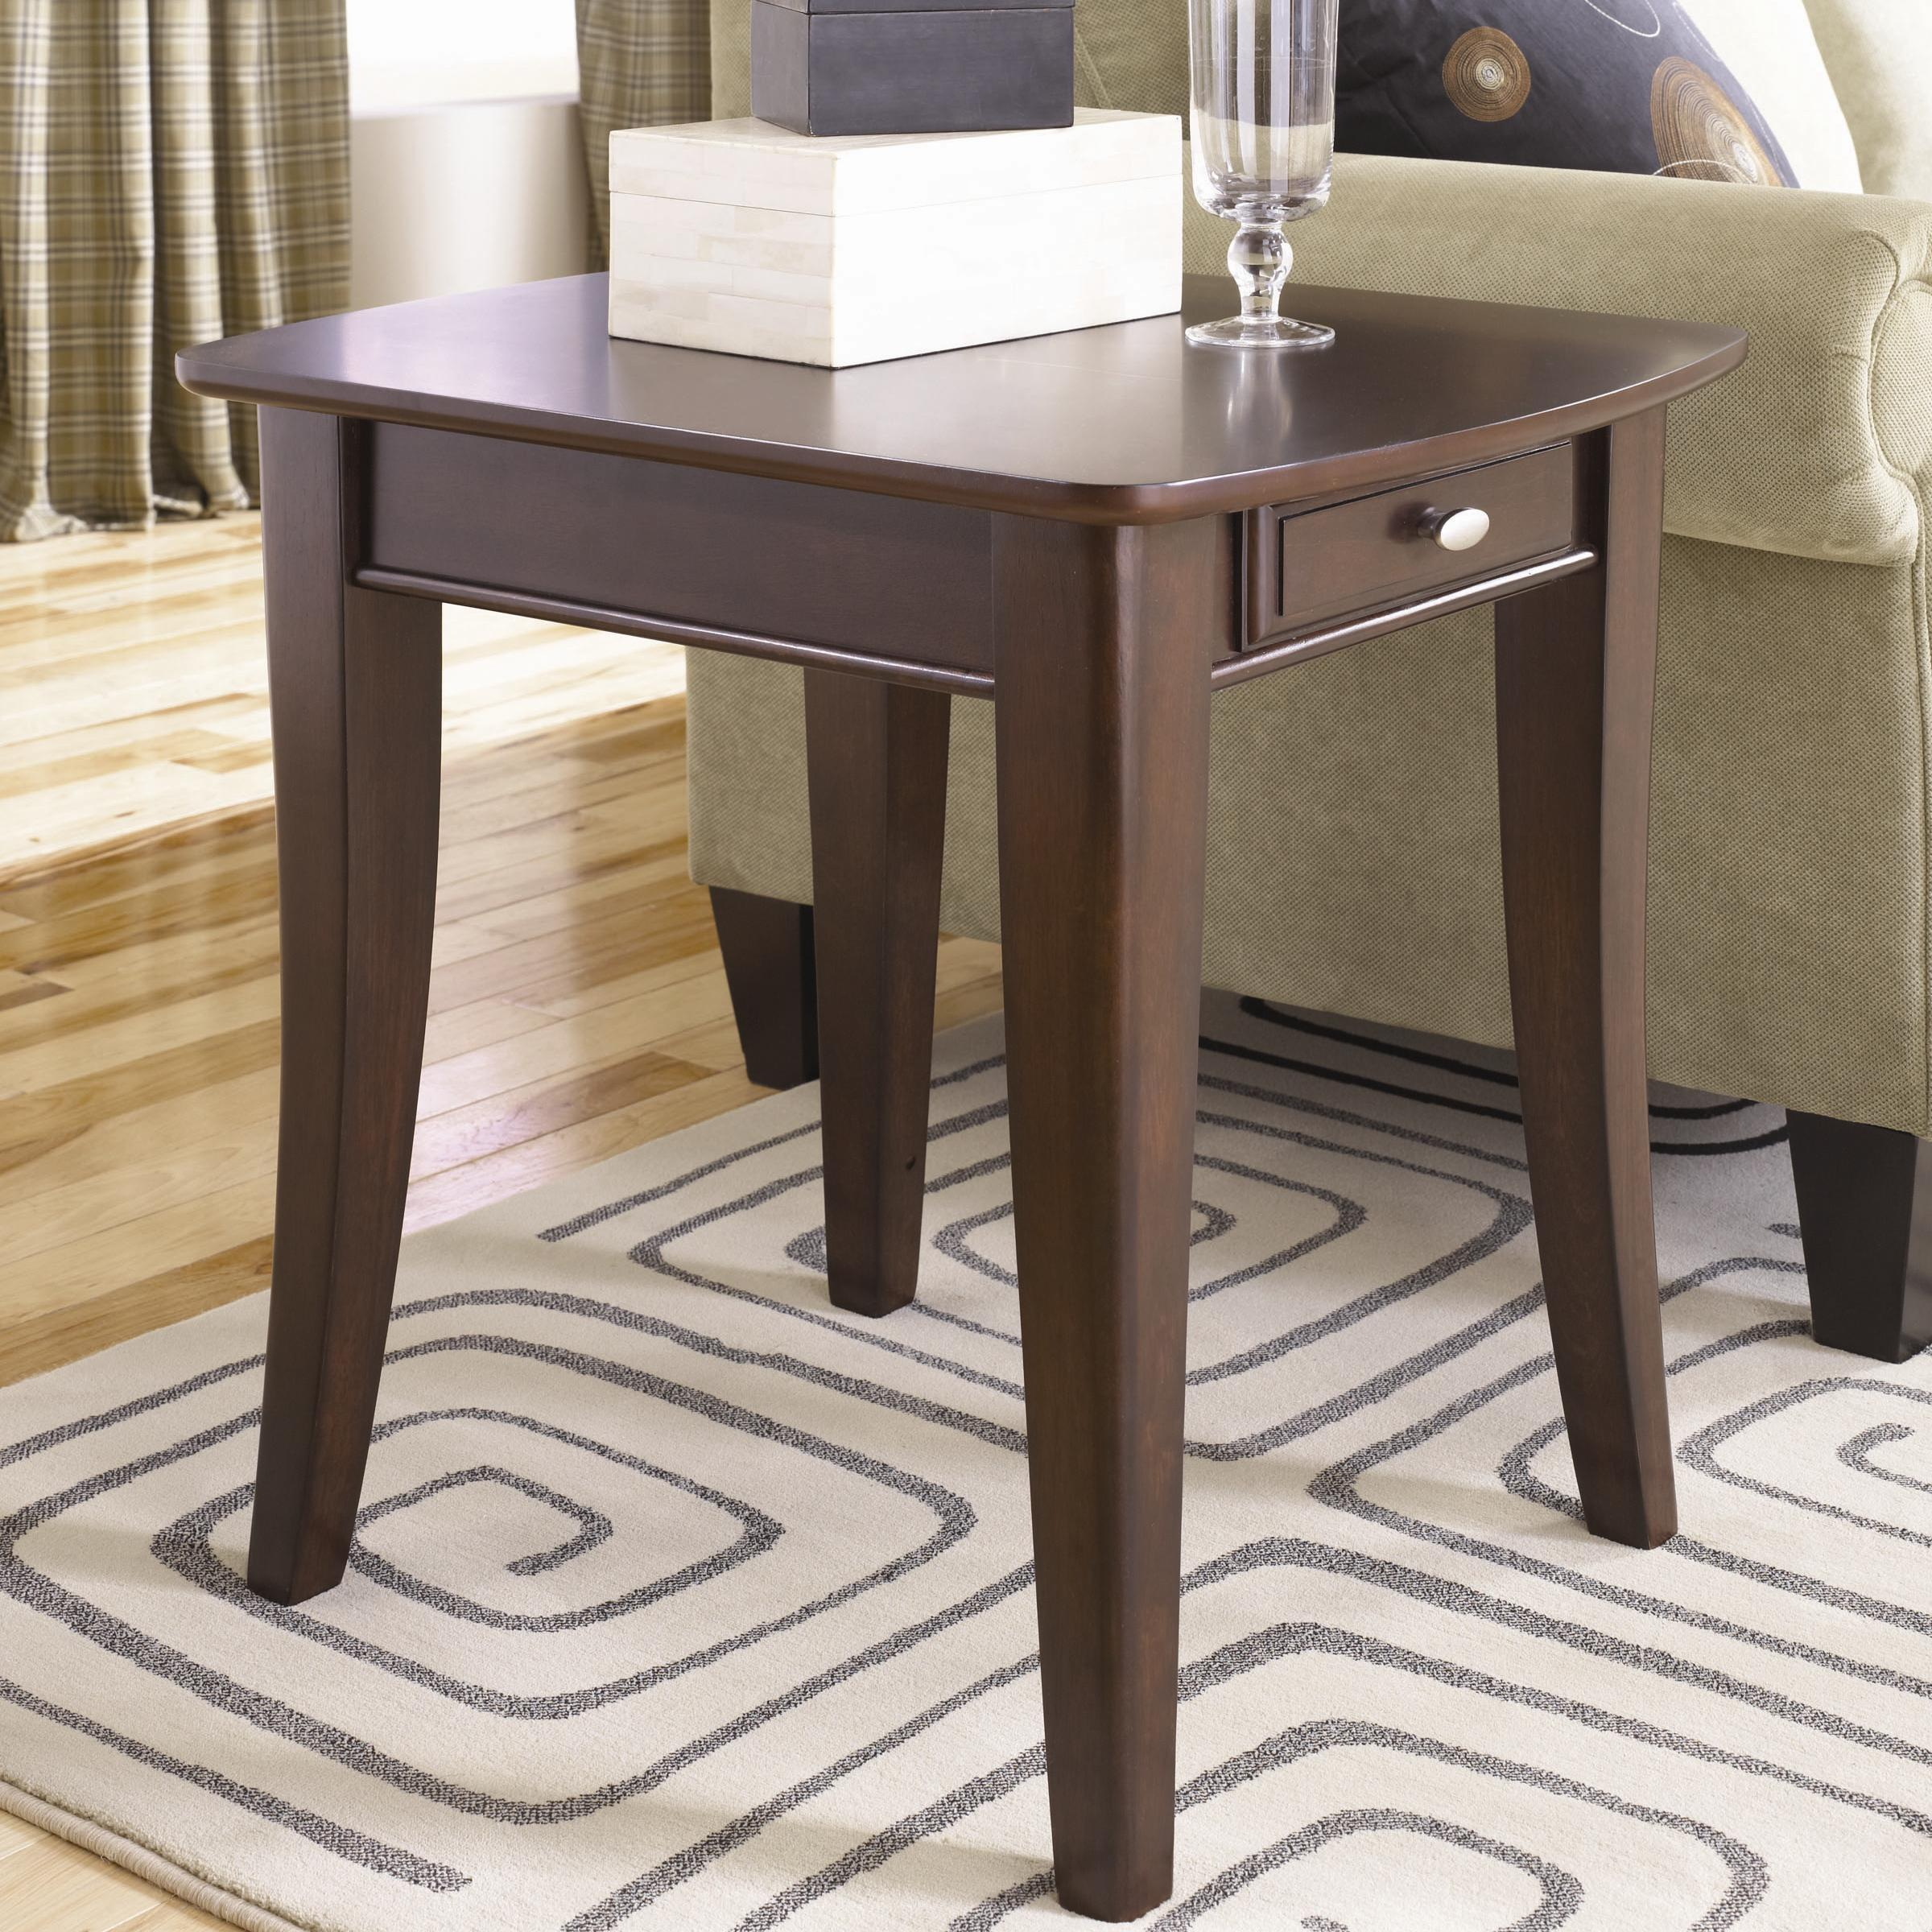 Hammary Enclave HAM Rectangular End Table - Item Number: T2079221-00